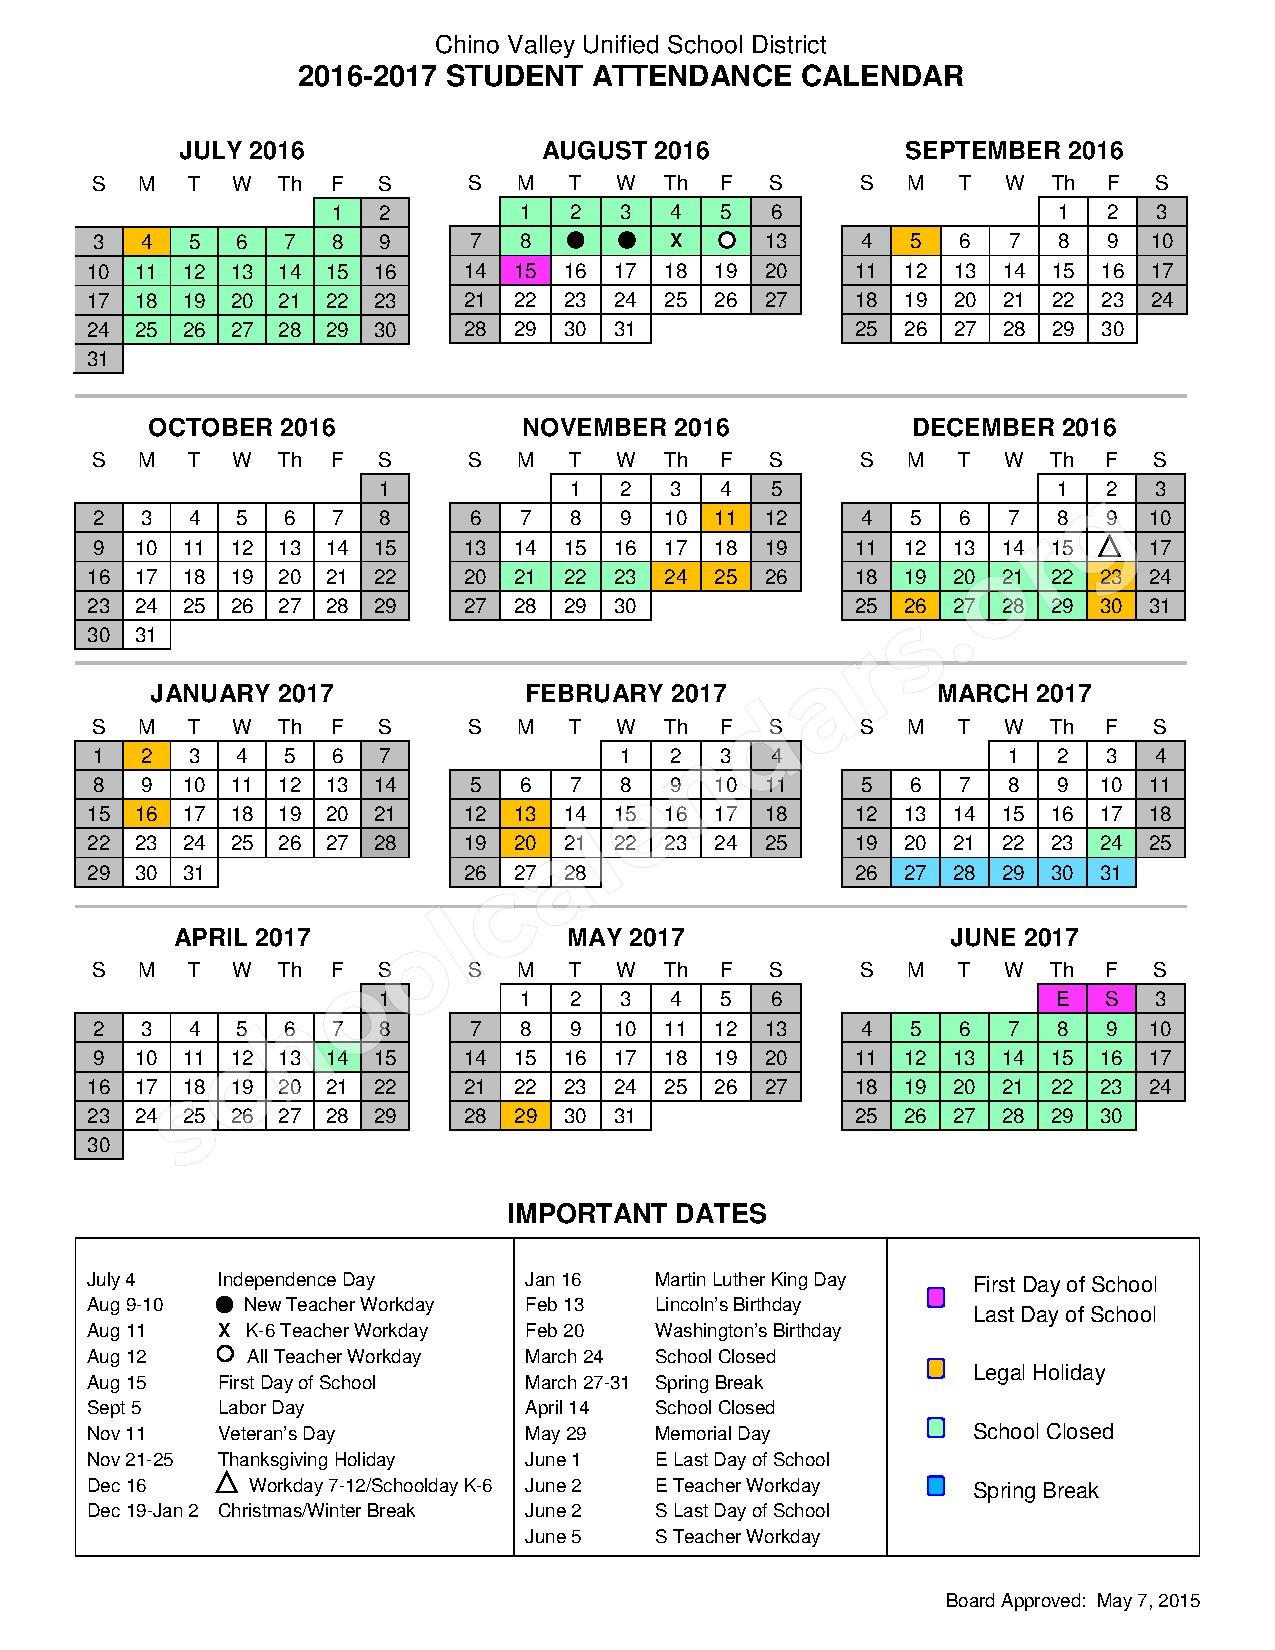 Calendar Dates : Important dates calendar chino valley